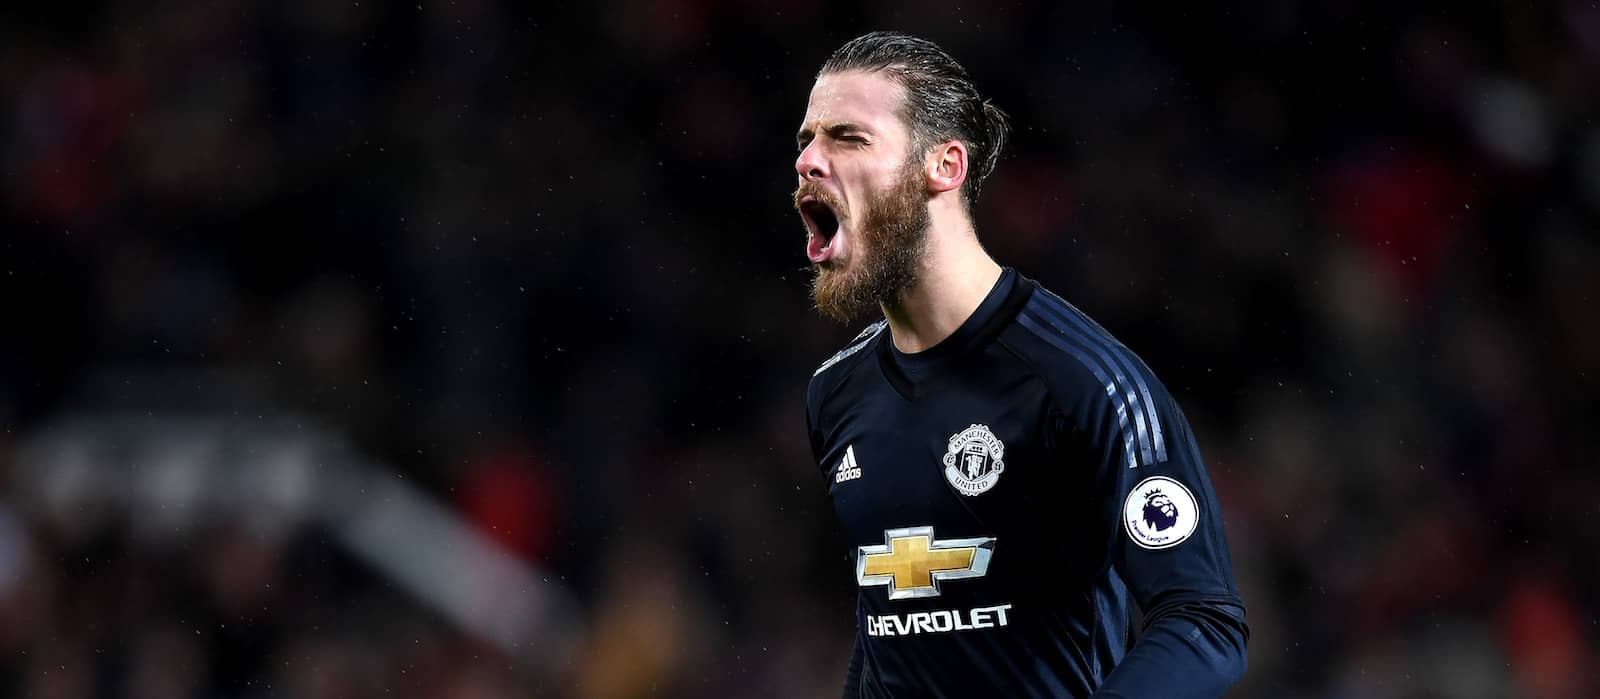 Manchester United fans concerned at prospect of losing David de Gea